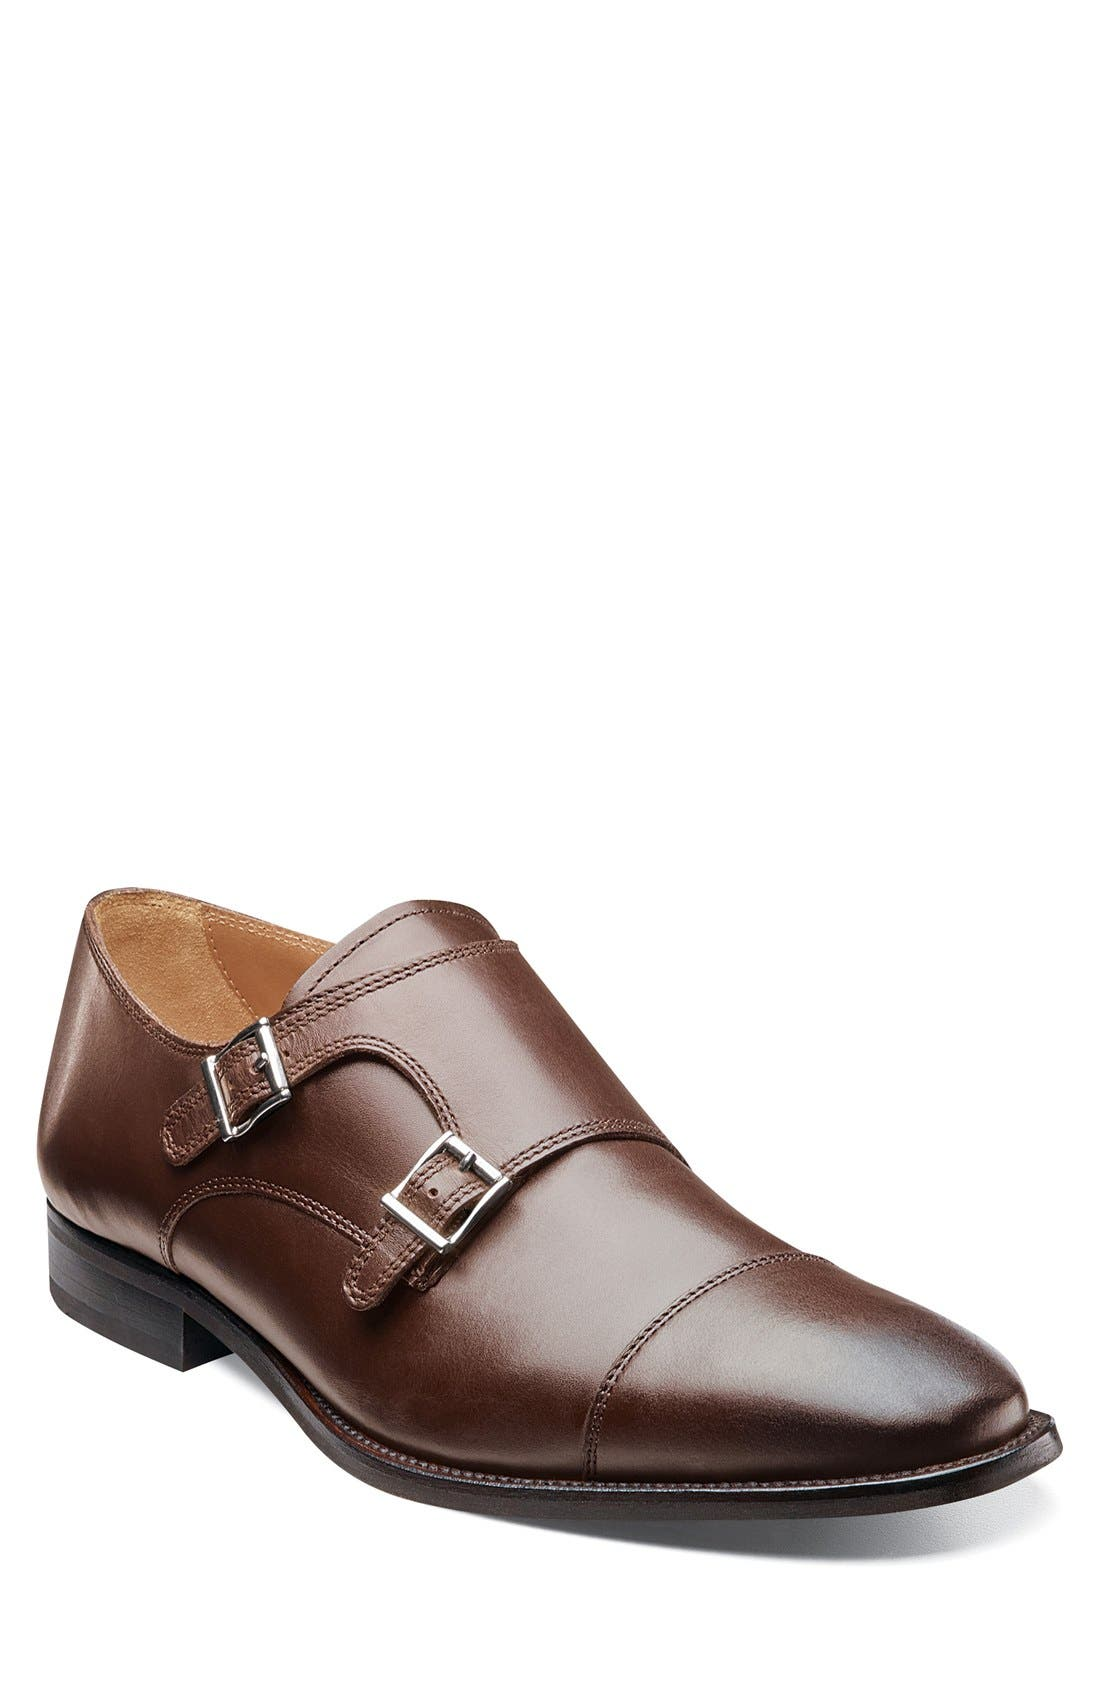 FLORSHEIM 'Sabato' Double Monk Strap Shoe, Main, color, BROWN